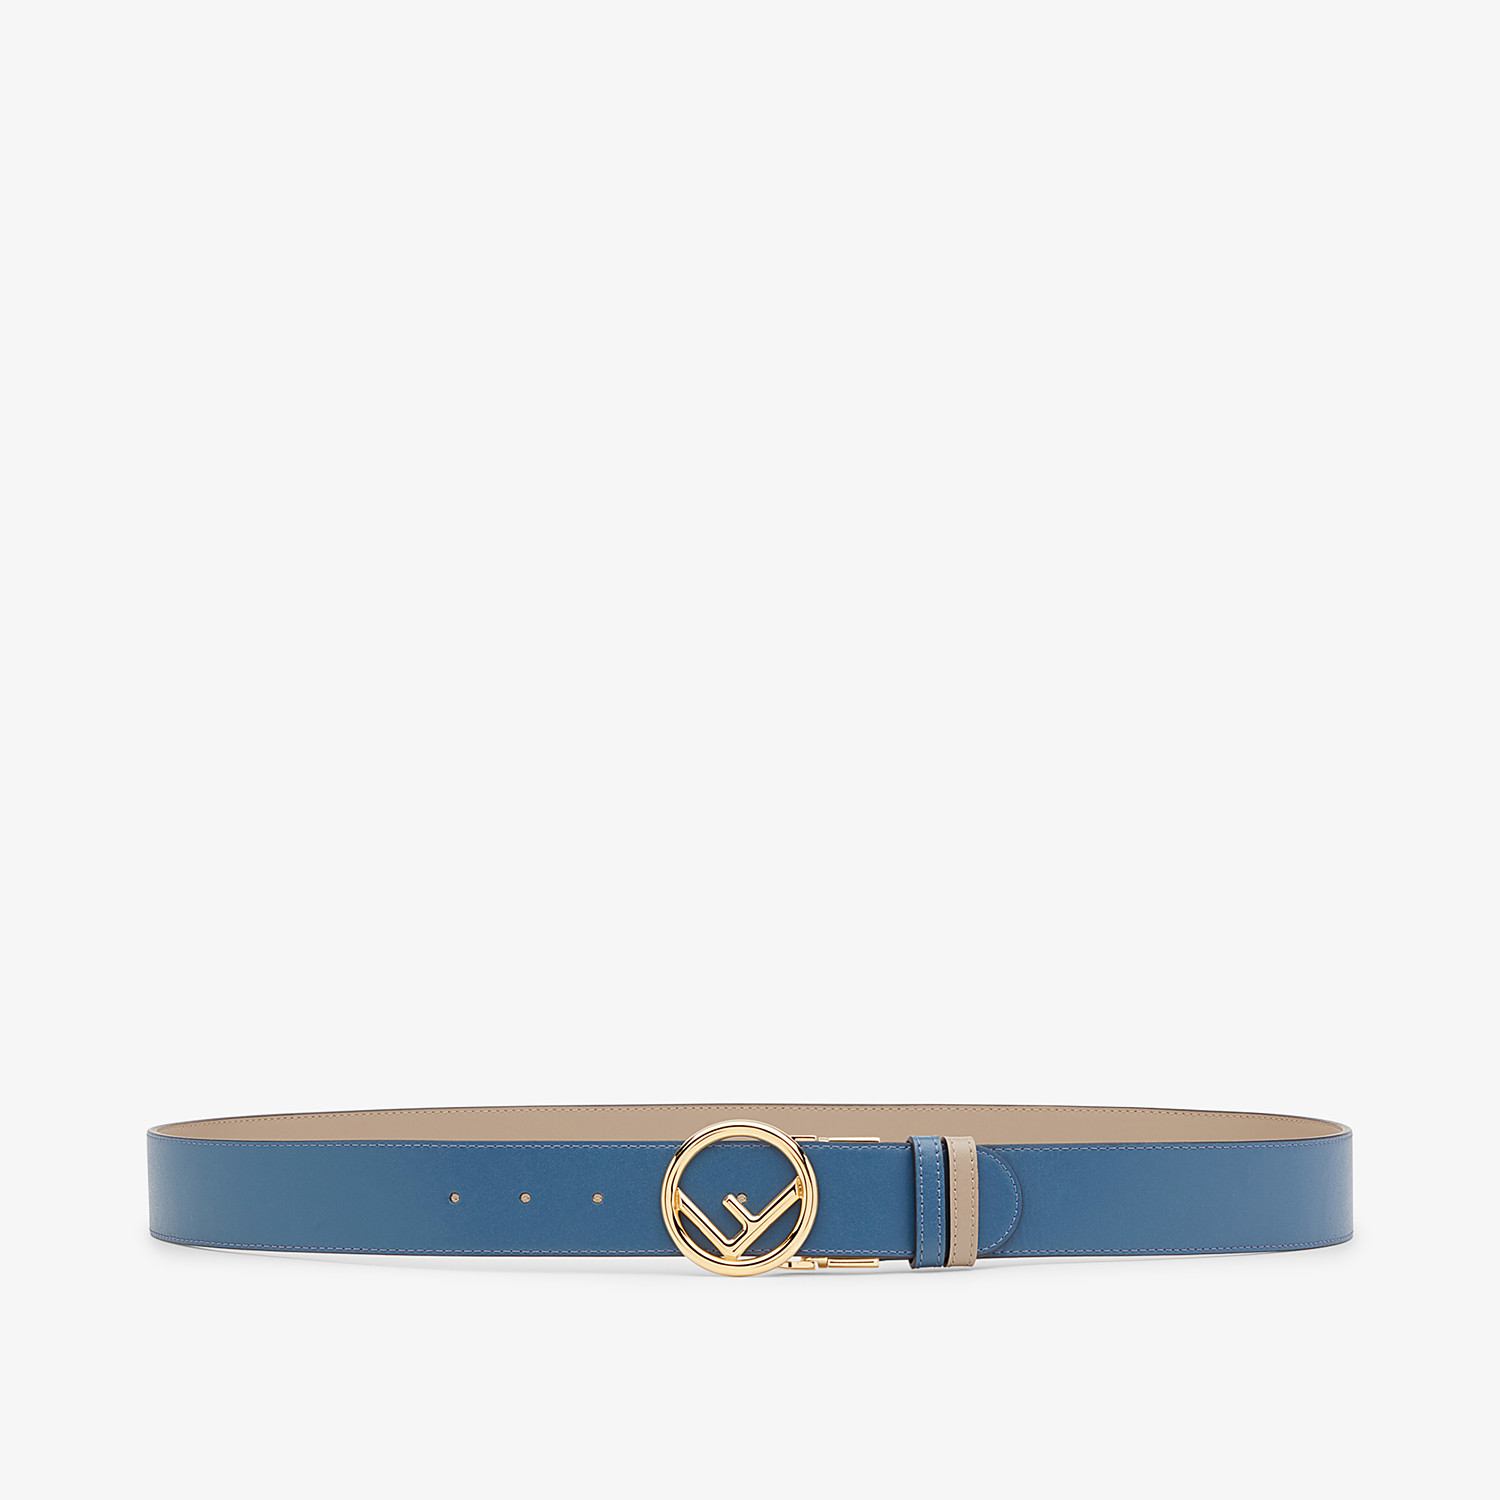 FENDI BELT - Beige and blue leather belt - view 1 detail